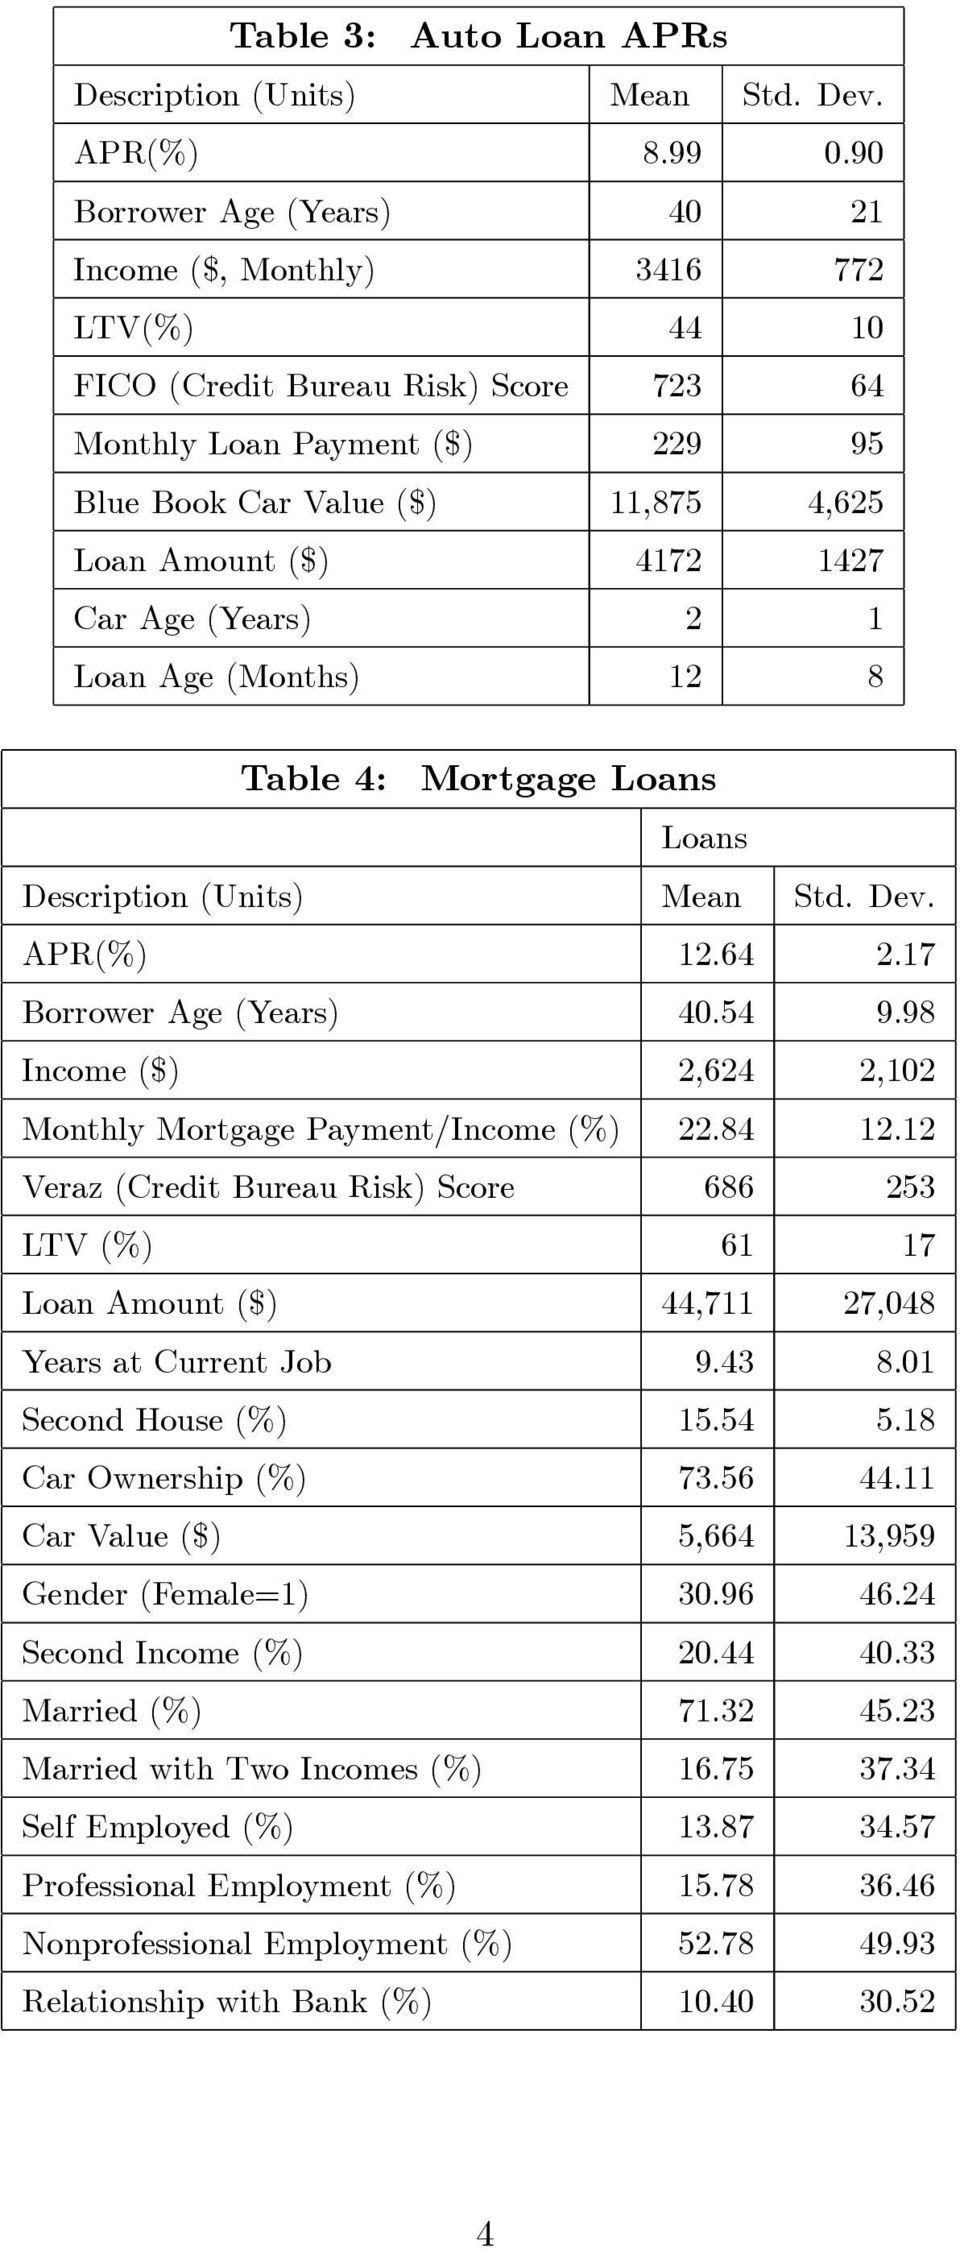 4172 1427 Car Age (Years) 2 1 Loan Age (Months) 12 8 Table 4: Mortgage Loans Loans Description (Units) Mean Std. Dev. APR(%) 12.64 2.17 Borrower Age (Years) 40.54 9.